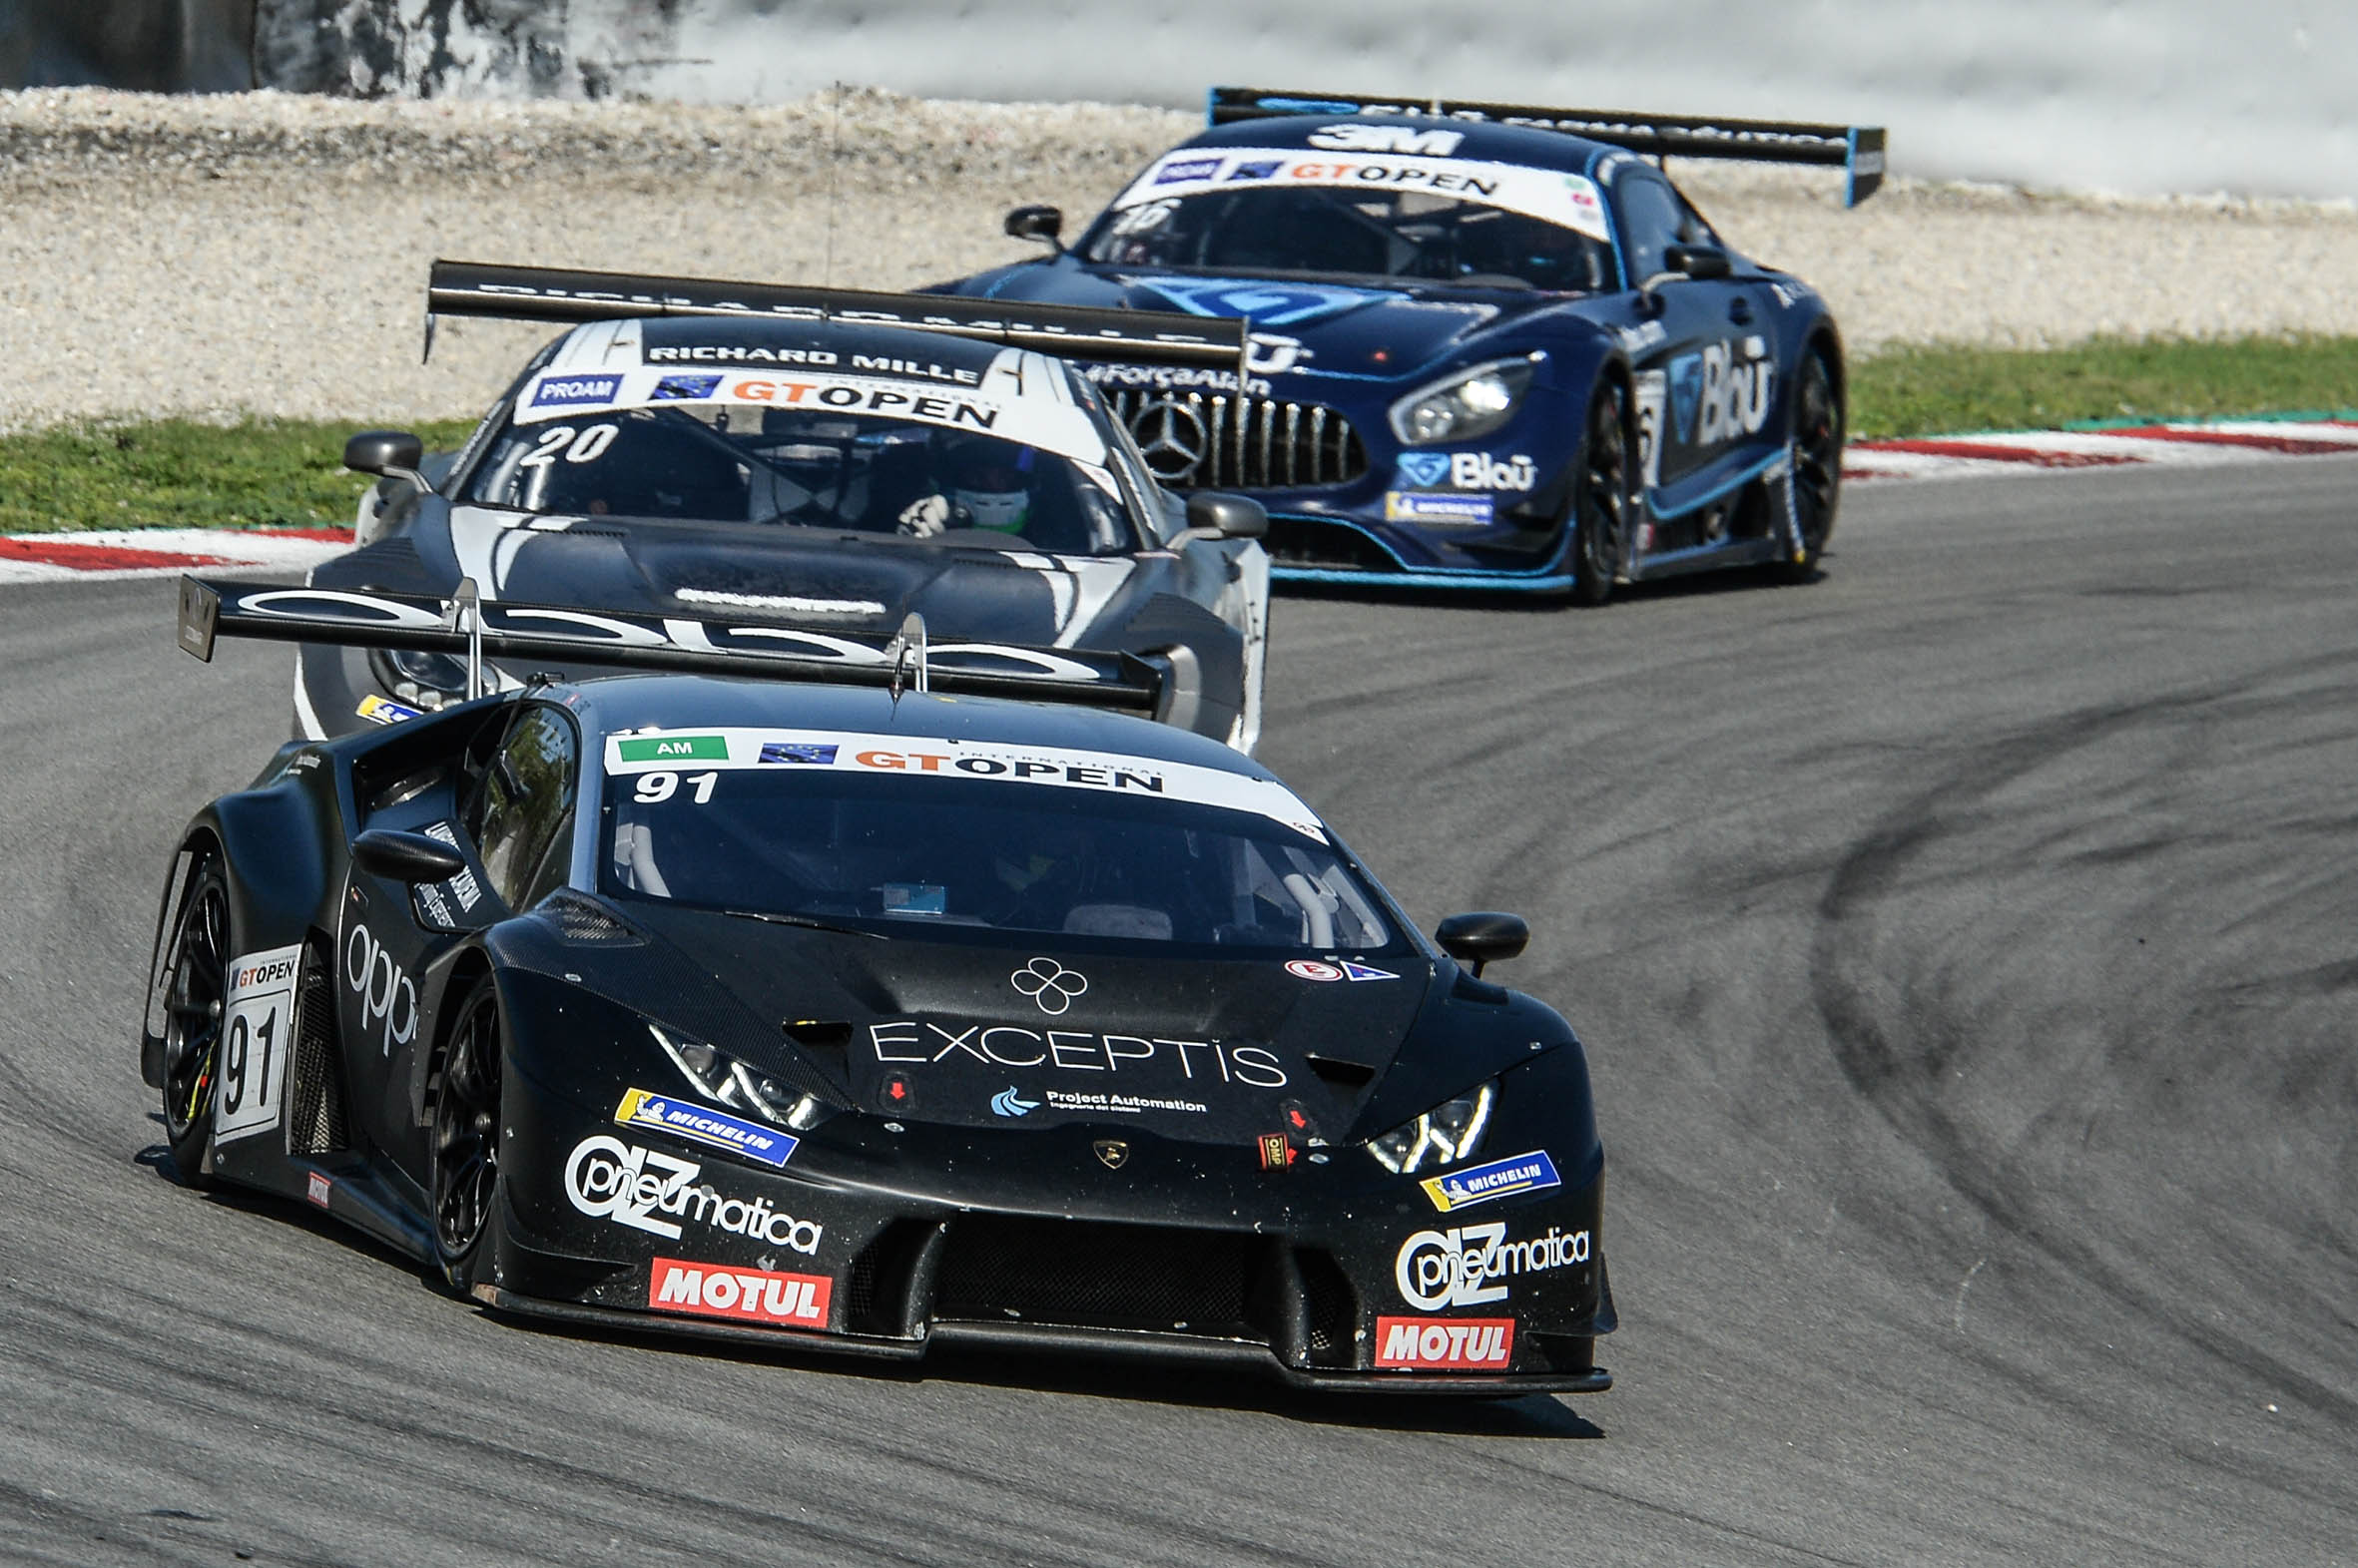 Target secures two Am class victories with Costantini in GT Open final round